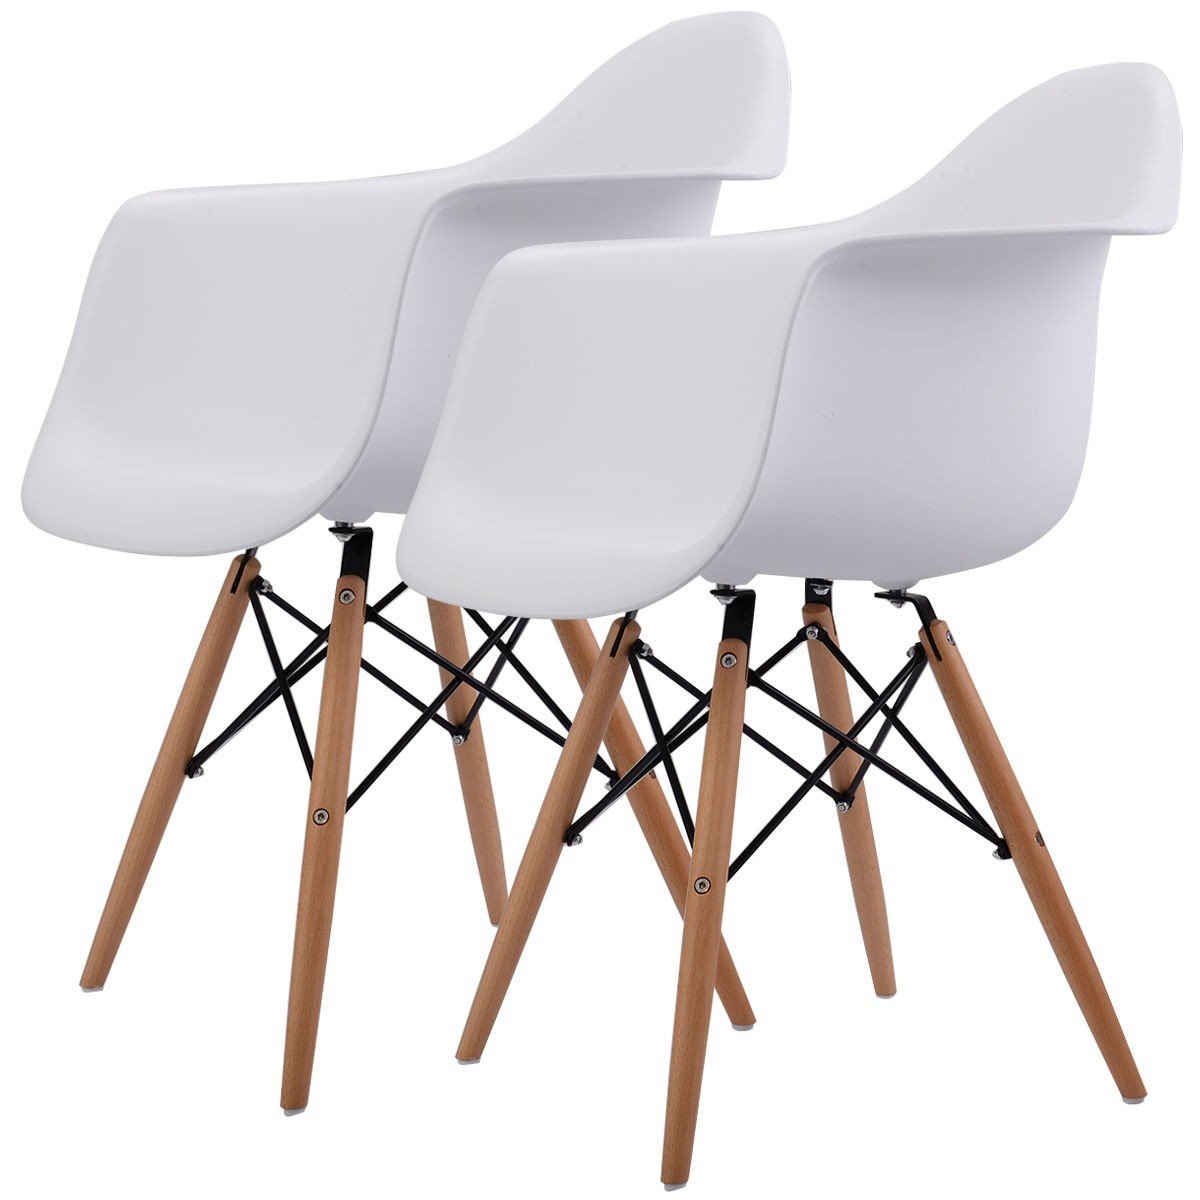 Set of 2 Mid Century Modern Molded Eames Style Dining Arm Chair Wood Legs - Dining Height Side Chair With Wood Base - Comfortable And Stylish - Mid-Century Looks, Perfect For Any Room In Your Home